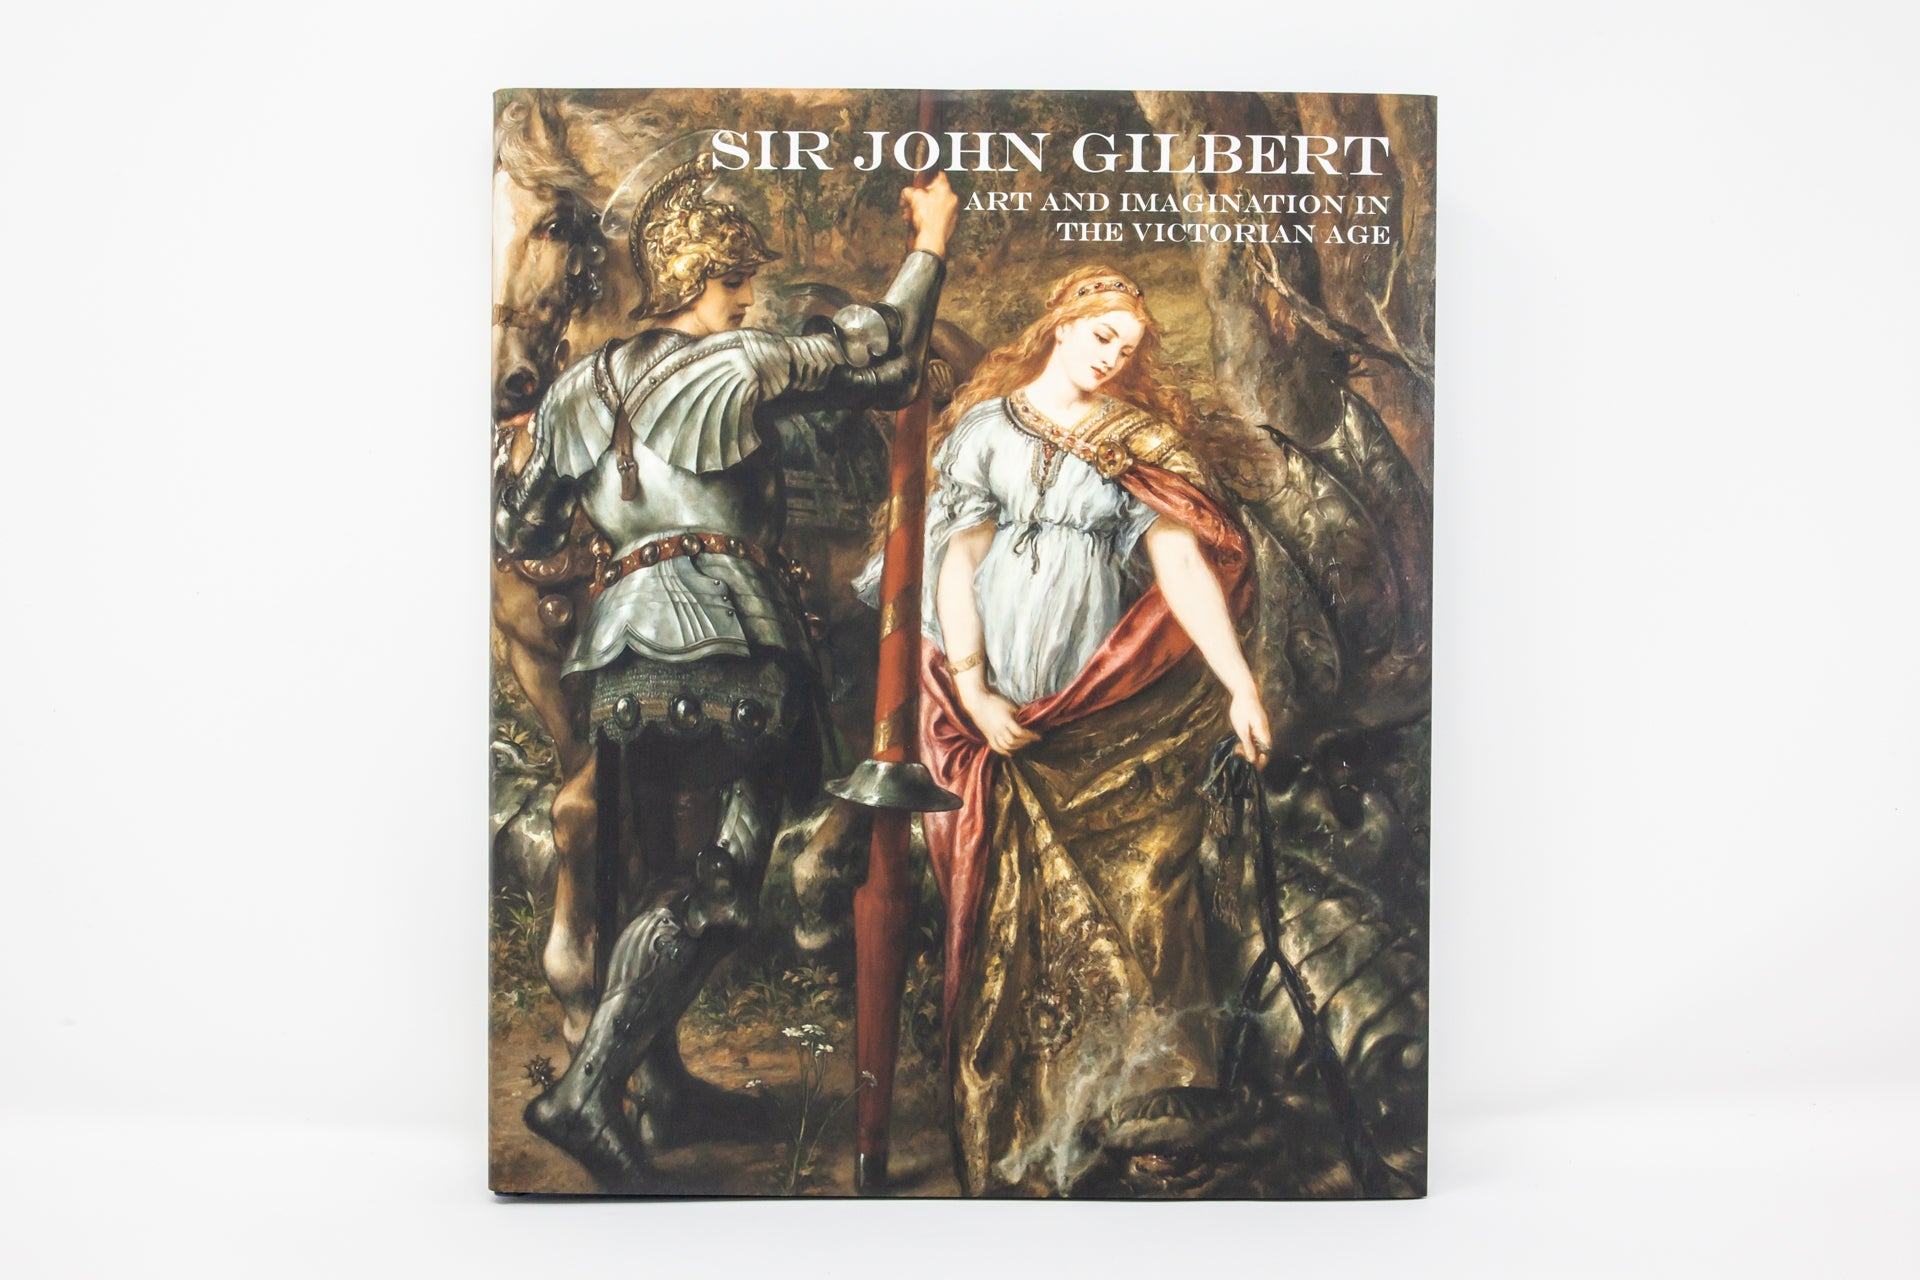 Sir John Gilbert: Art and Imagination in the Victorian Age